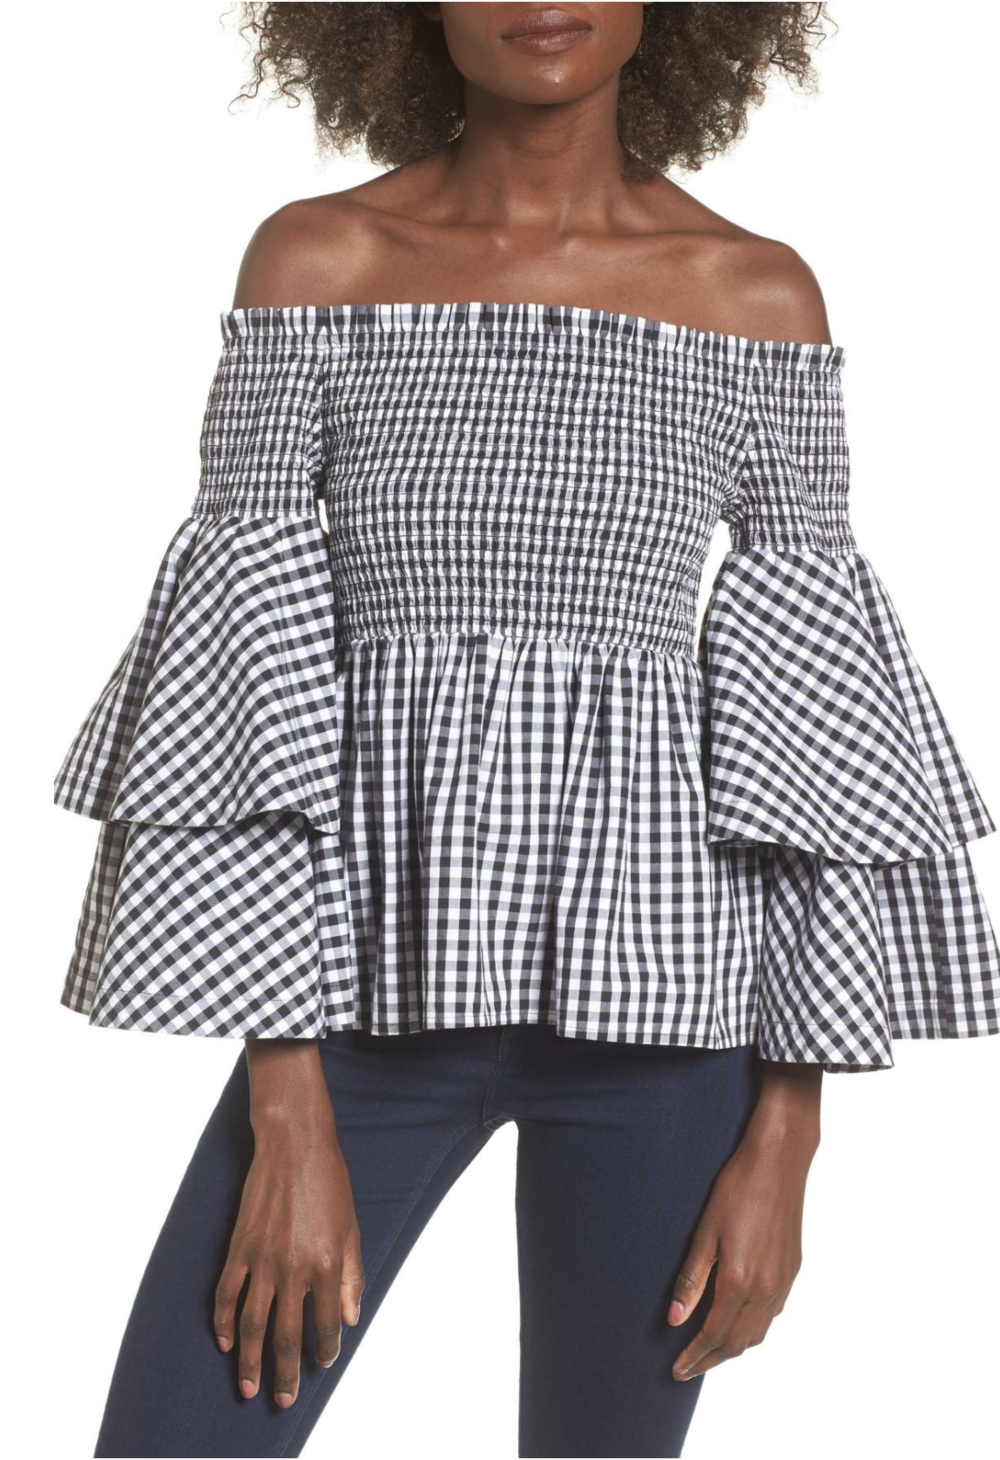 Statement Top - What I love most about this Style Keepers top is that it brings the drama in such a chic way. The belted version I am wearing is sold out, but Nordstrom still has the belt-less version, plus it's on sale for $32.98!